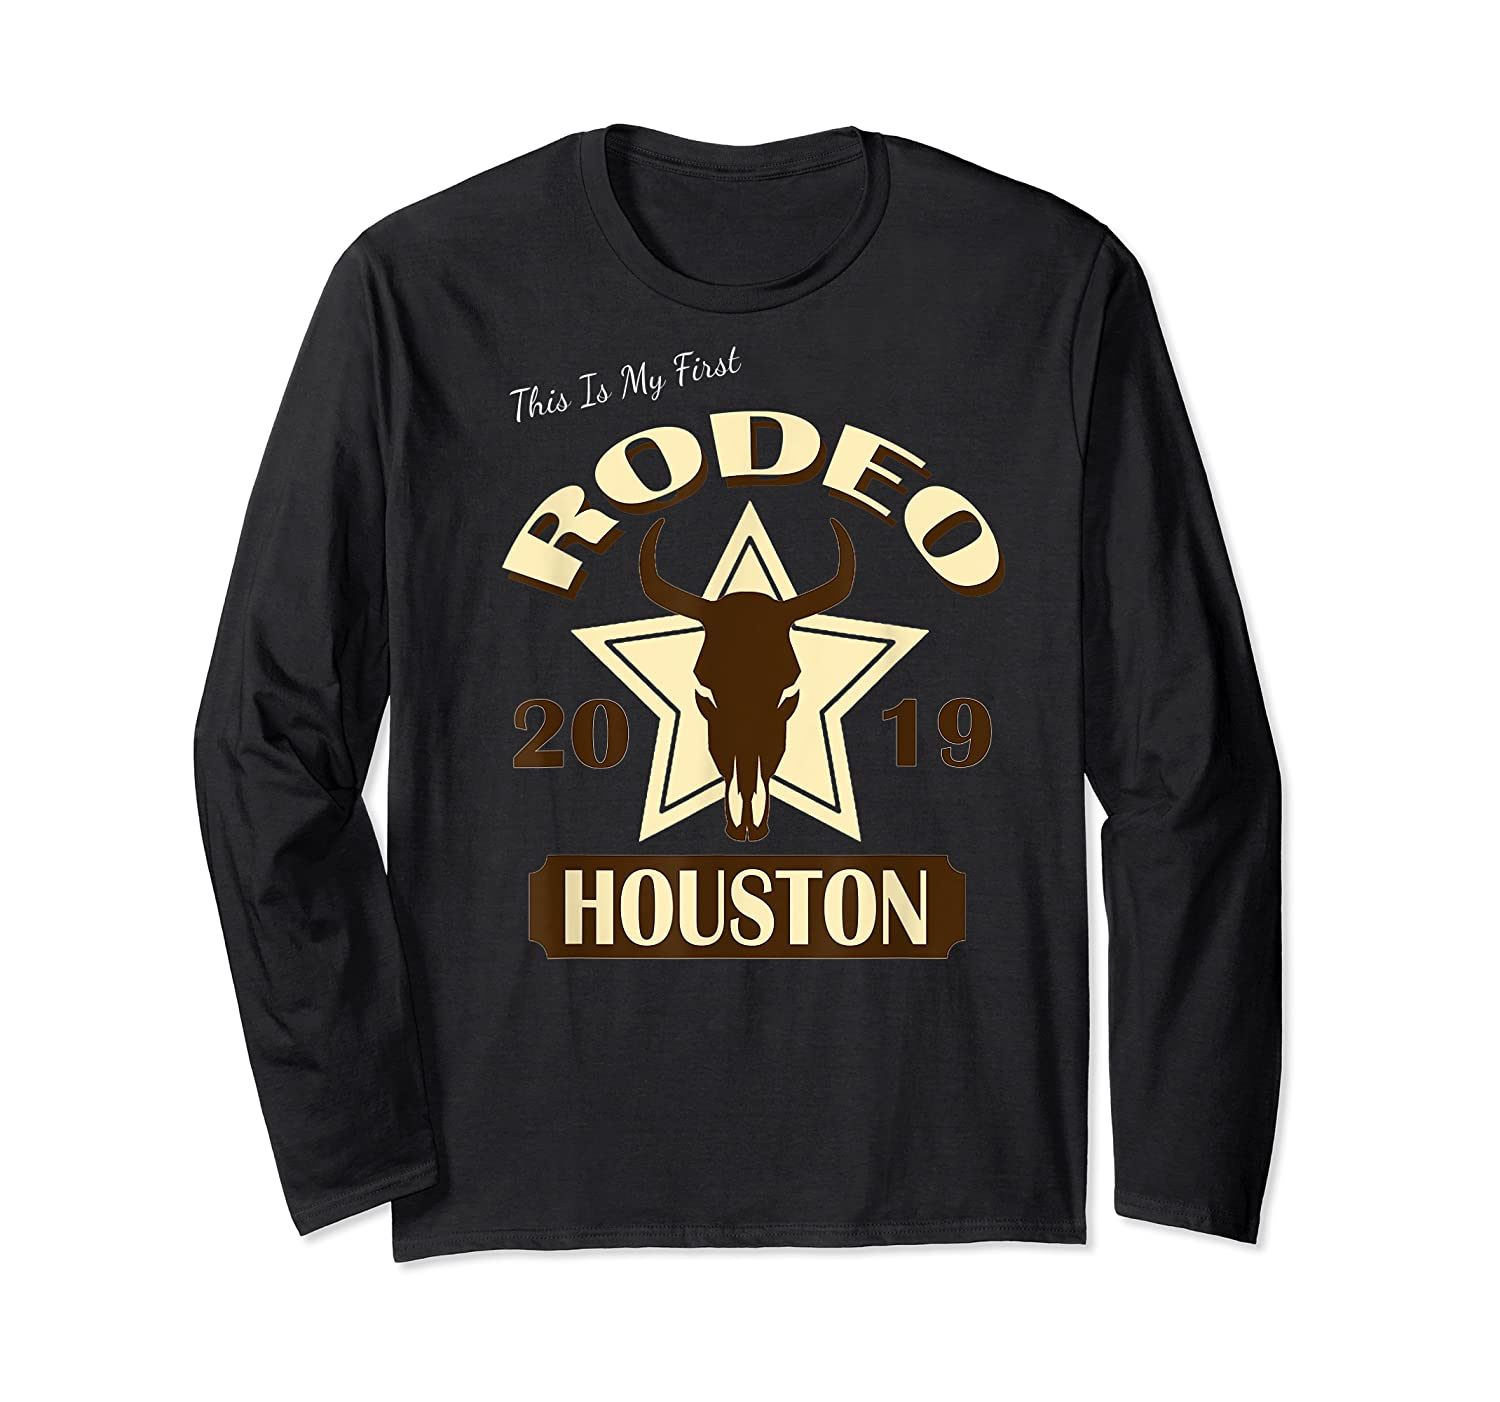 Rodeo 2019 T Shirt This Is My First Houston Rodeo Long Sleeve T-shirt